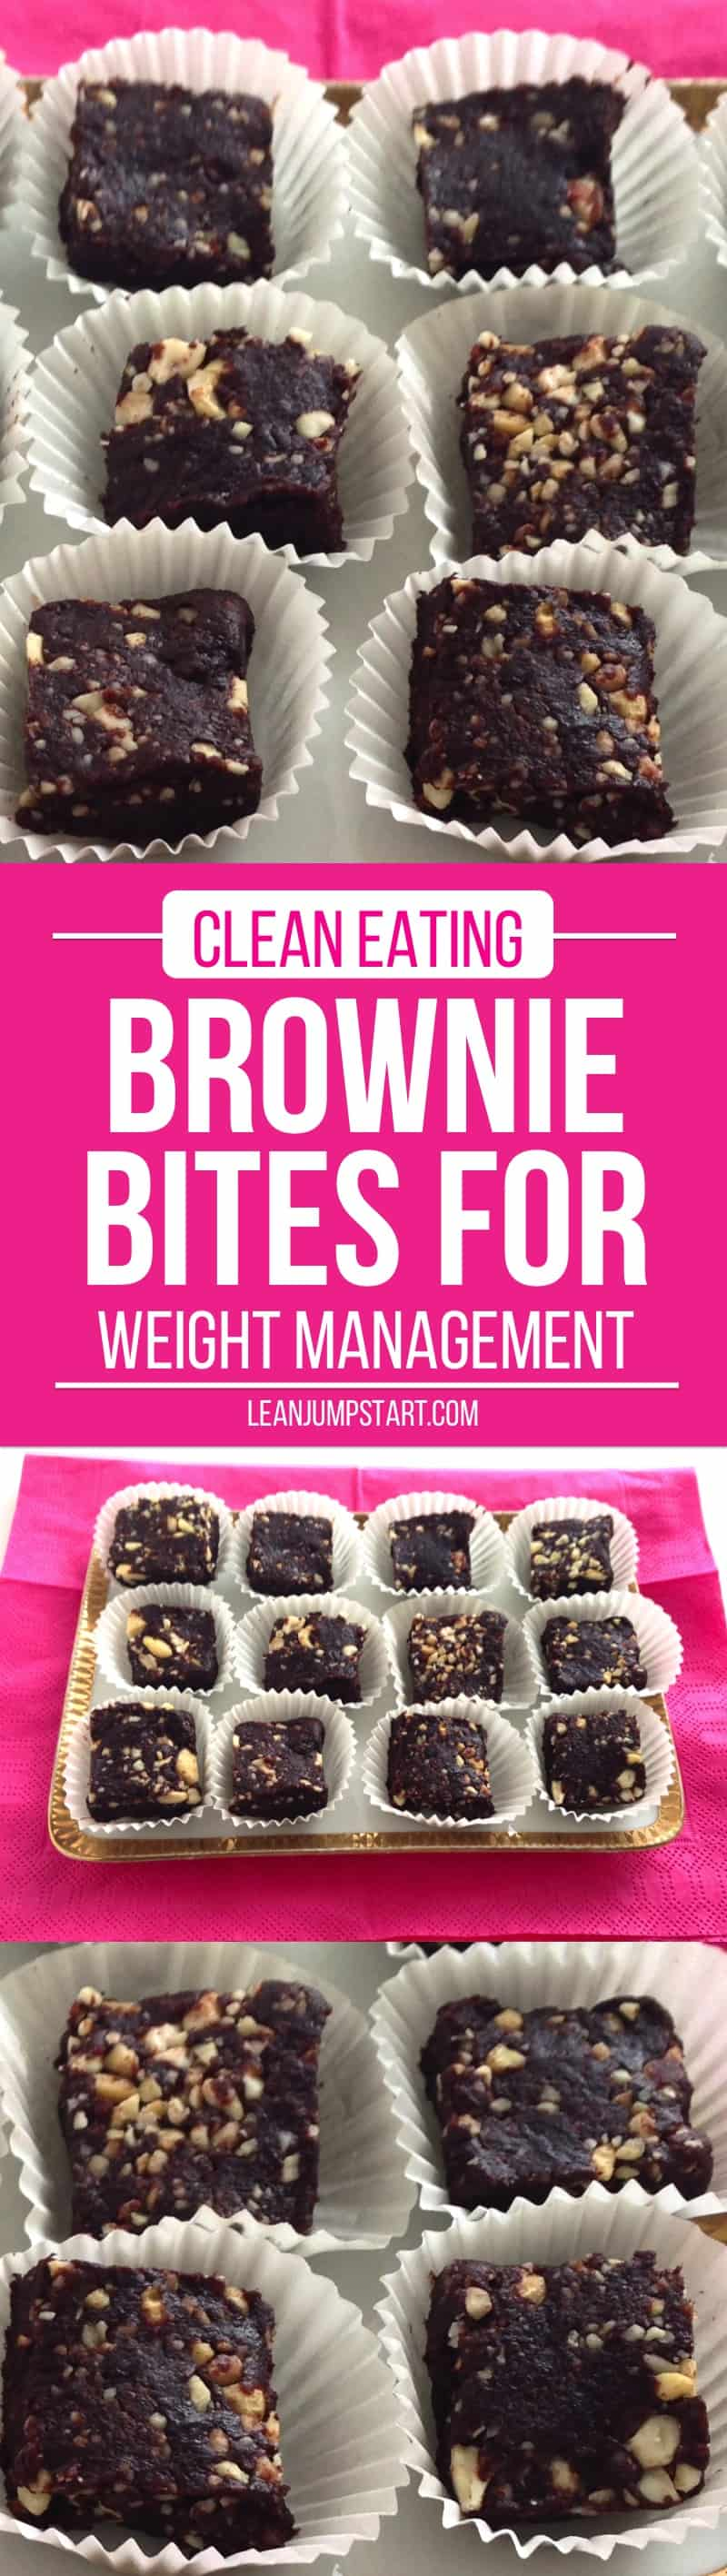 clean eating brownie bites for weight management